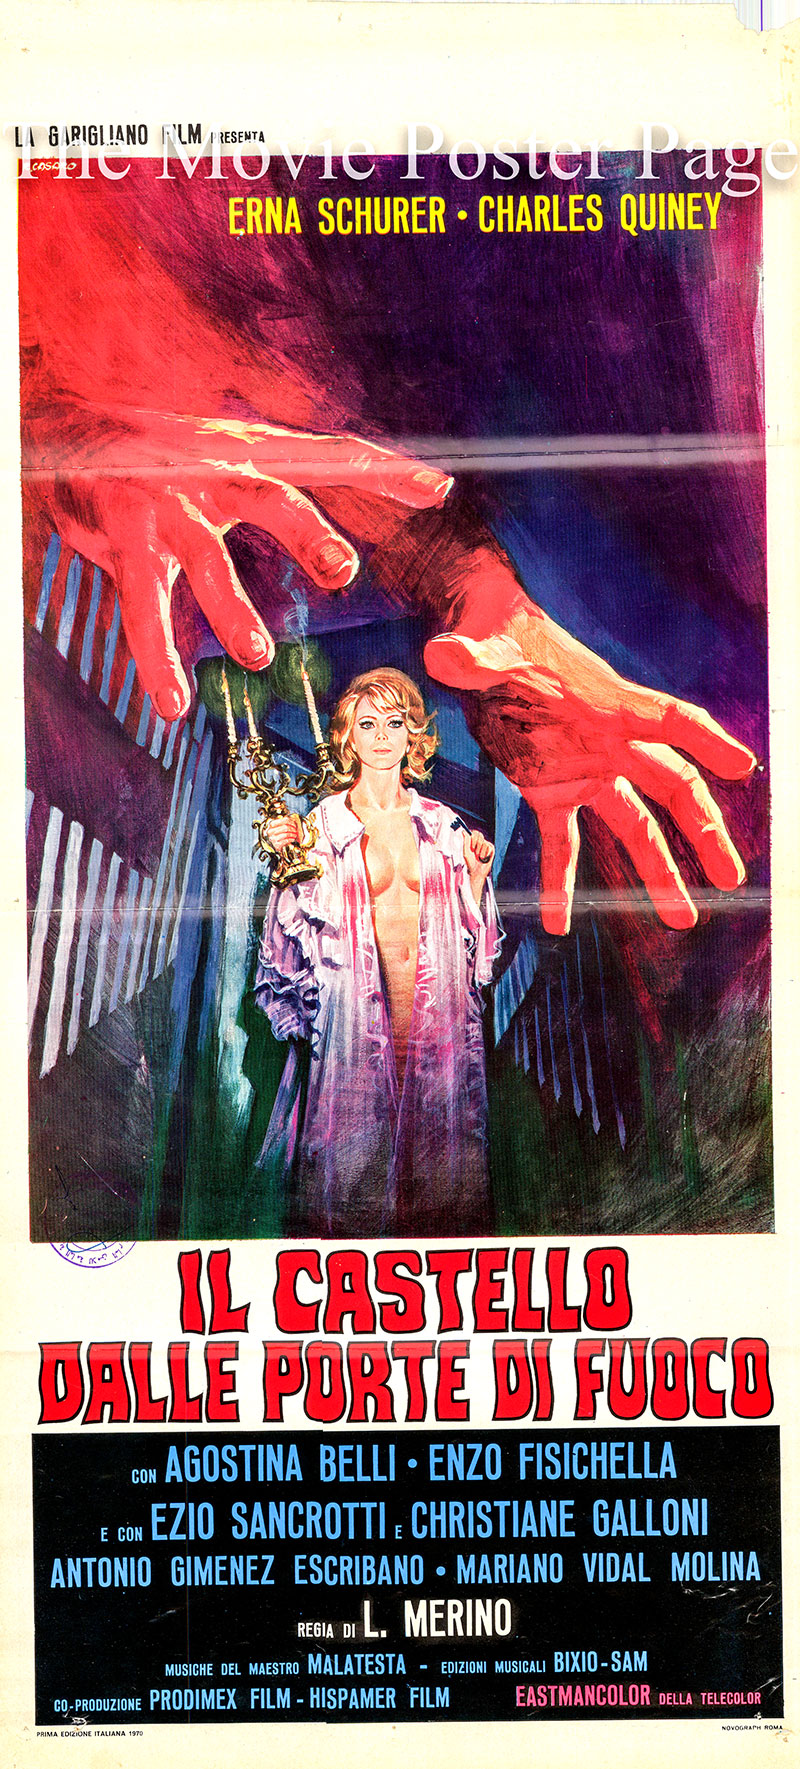 Pictured is an Italian locandina promotional poster for the 1970 Jose Luis Merino film Killers of the Castle of Blood starring Erna Schurer as Ivanna Rakowsky.